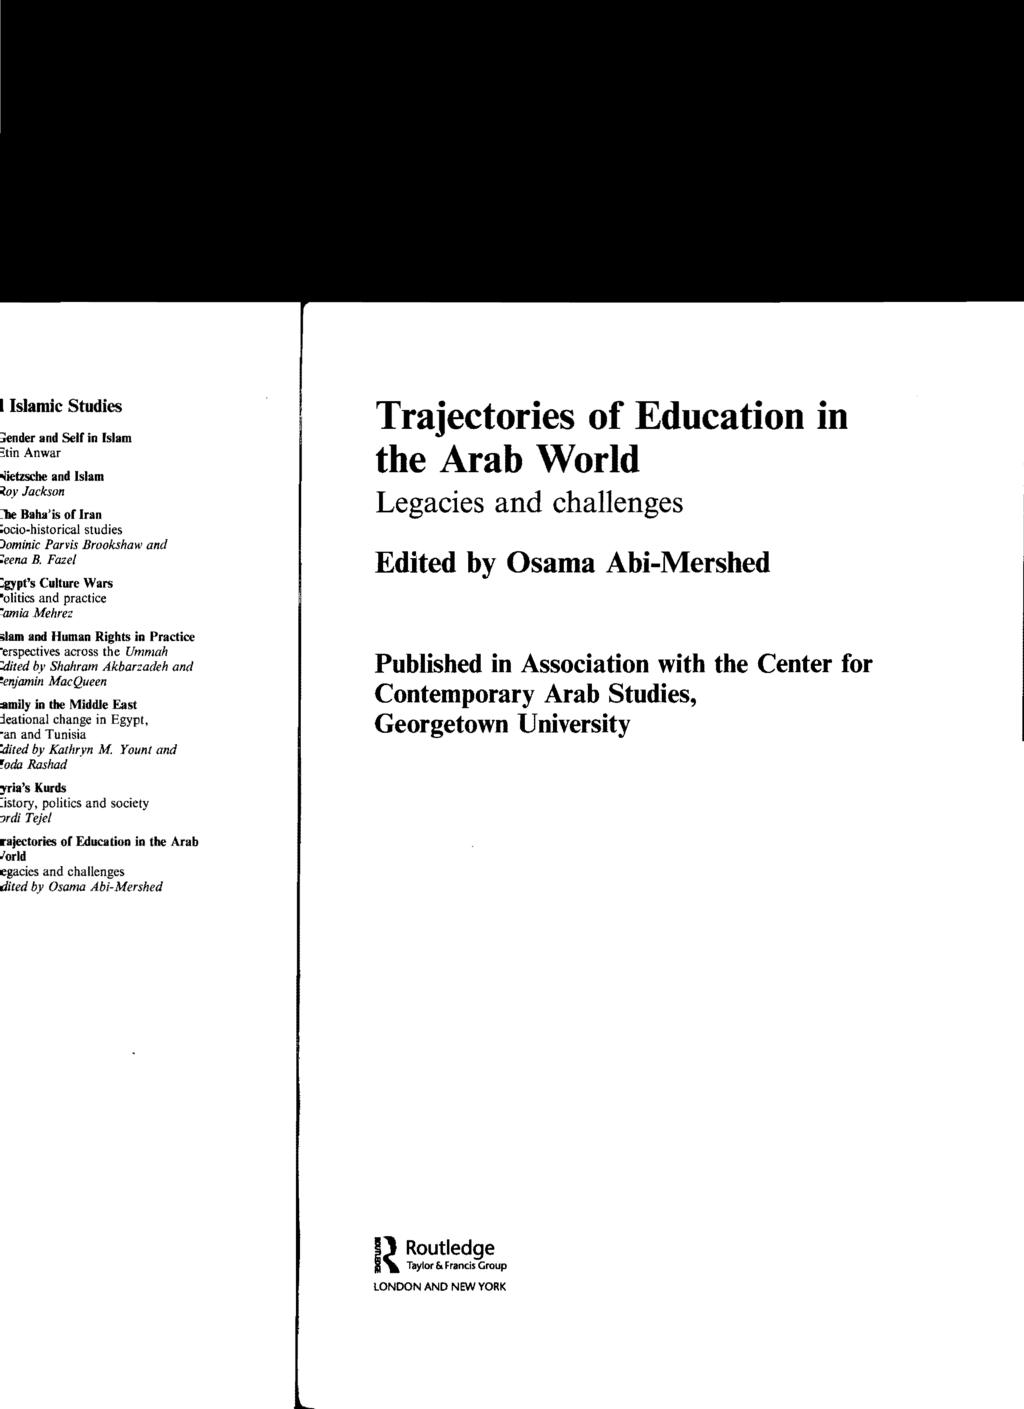 Trajectories of Education in the Arab World Legacies and challenges Edited by Osama Abi-Mershed Published in